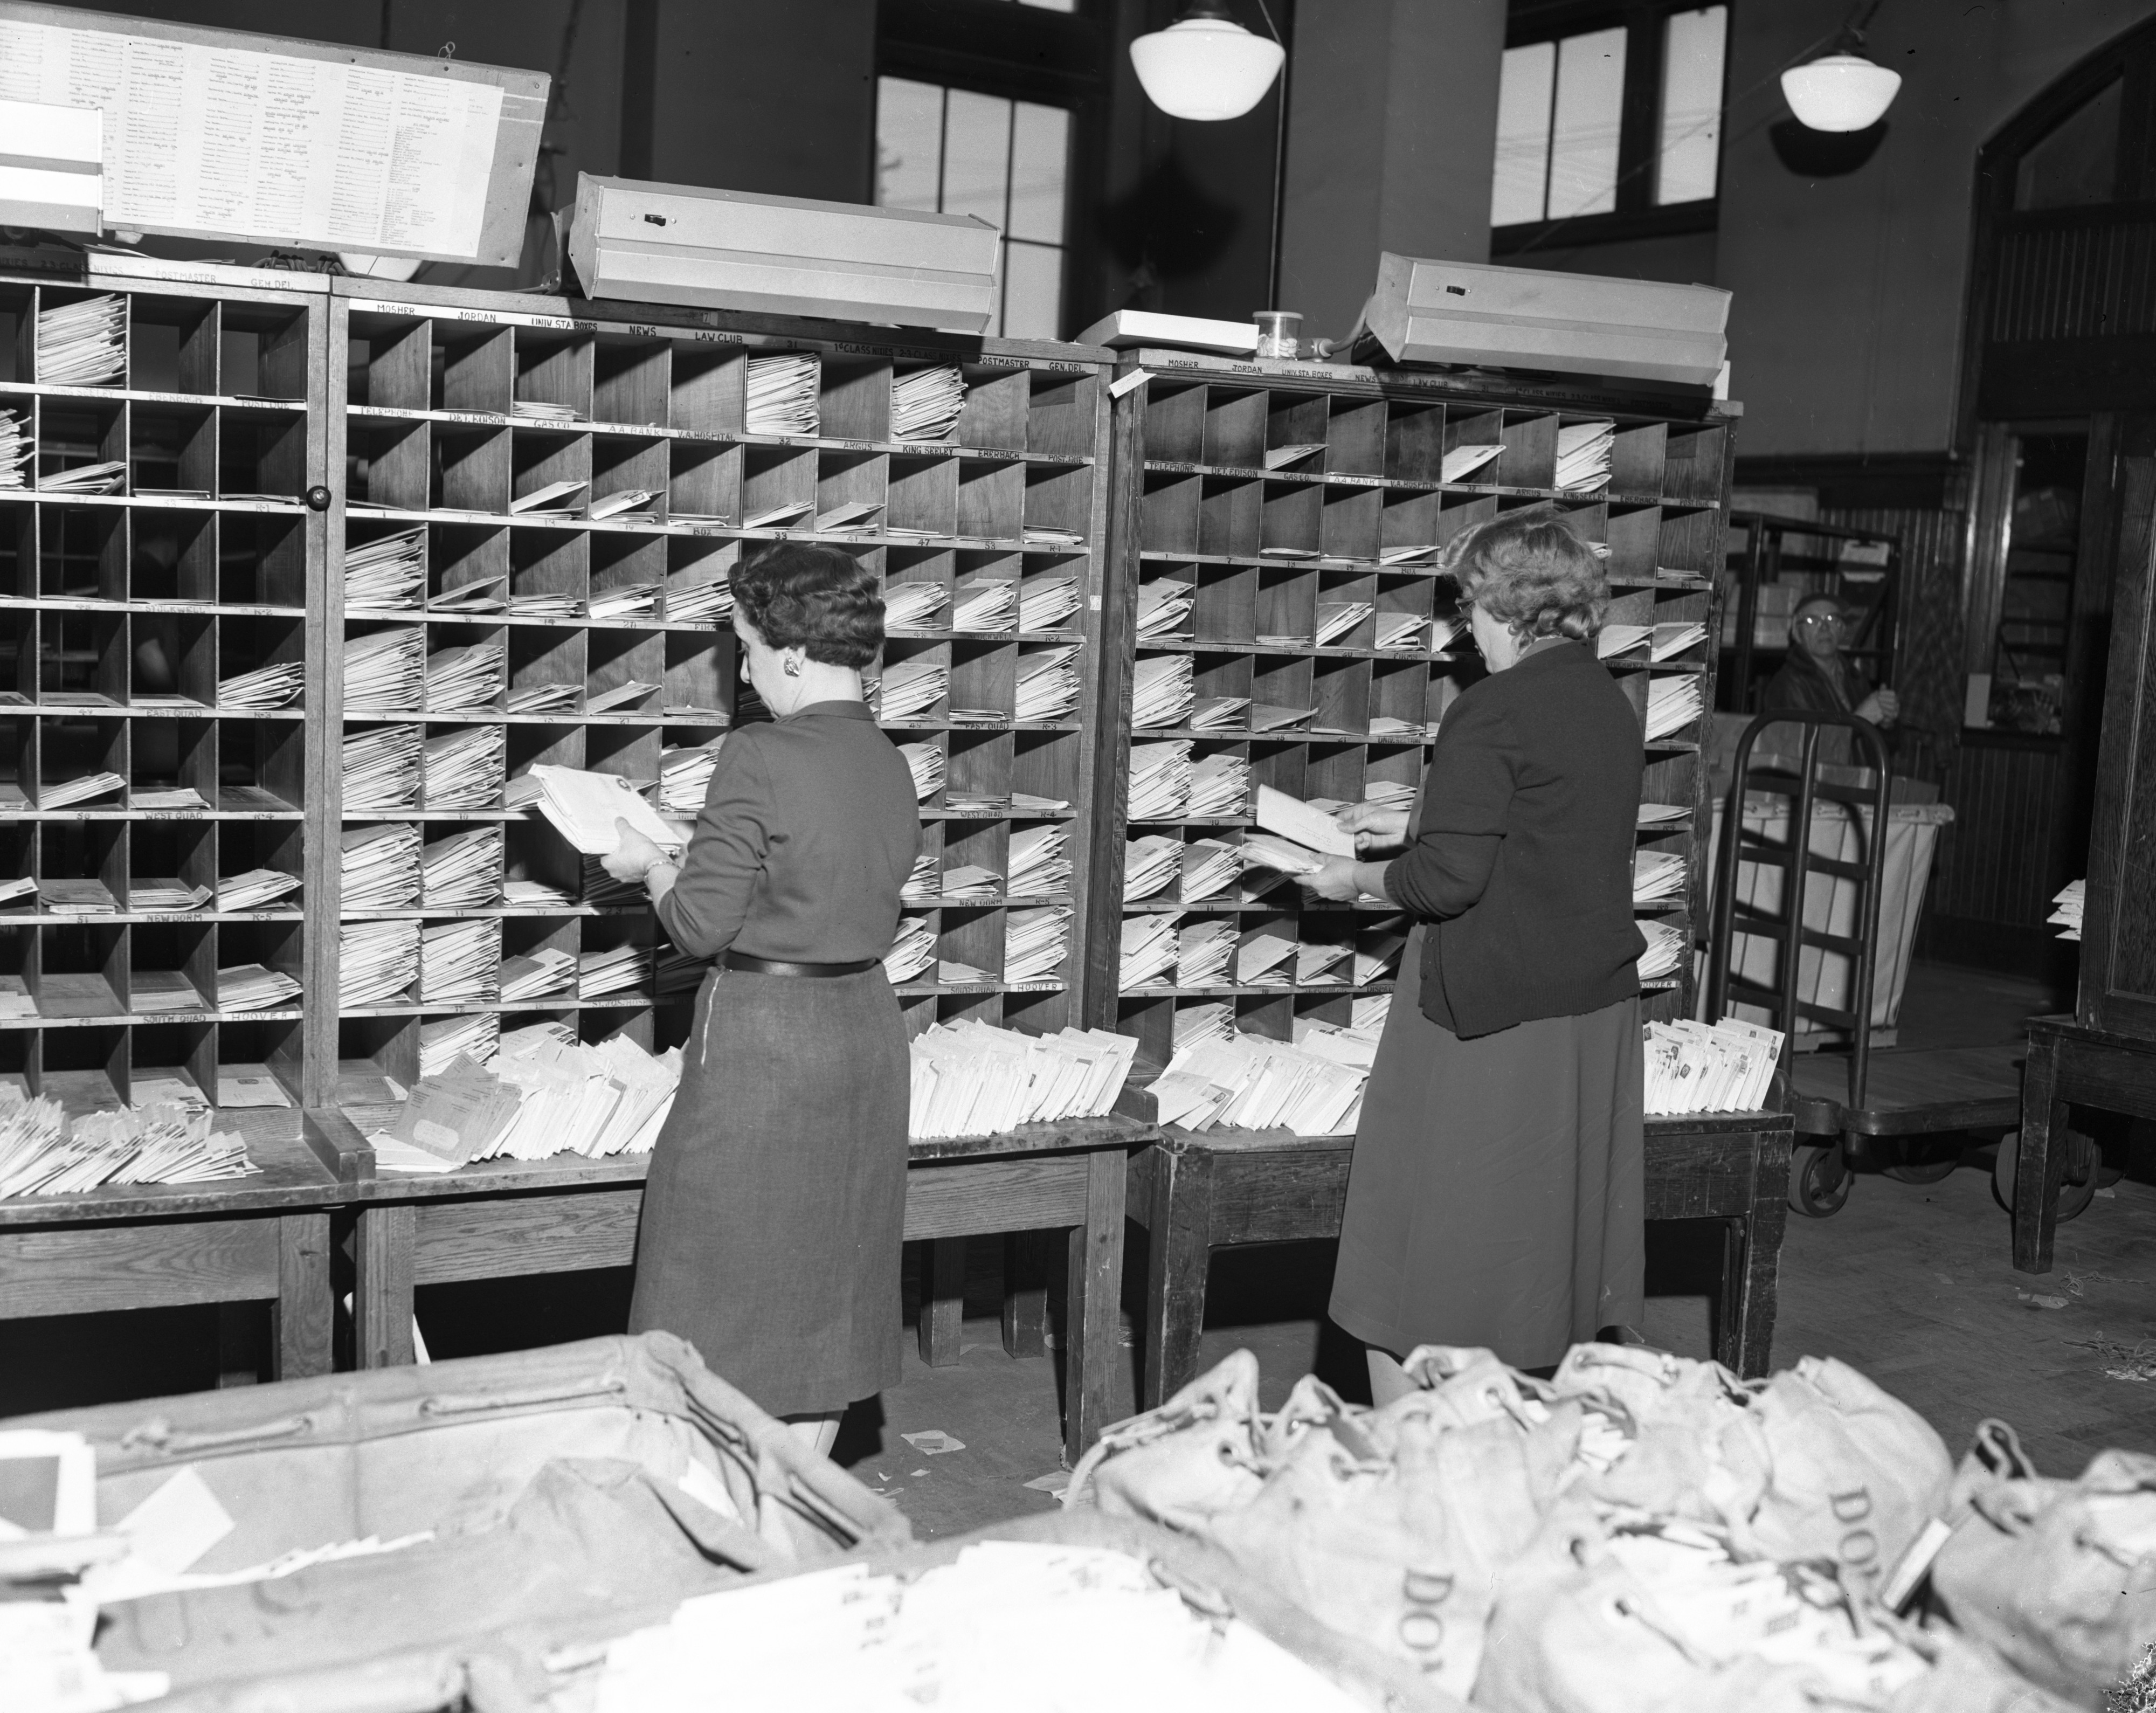 Sorting greeting cards during Christmas rush at the Ann Arbor Post Office, December 1955 image